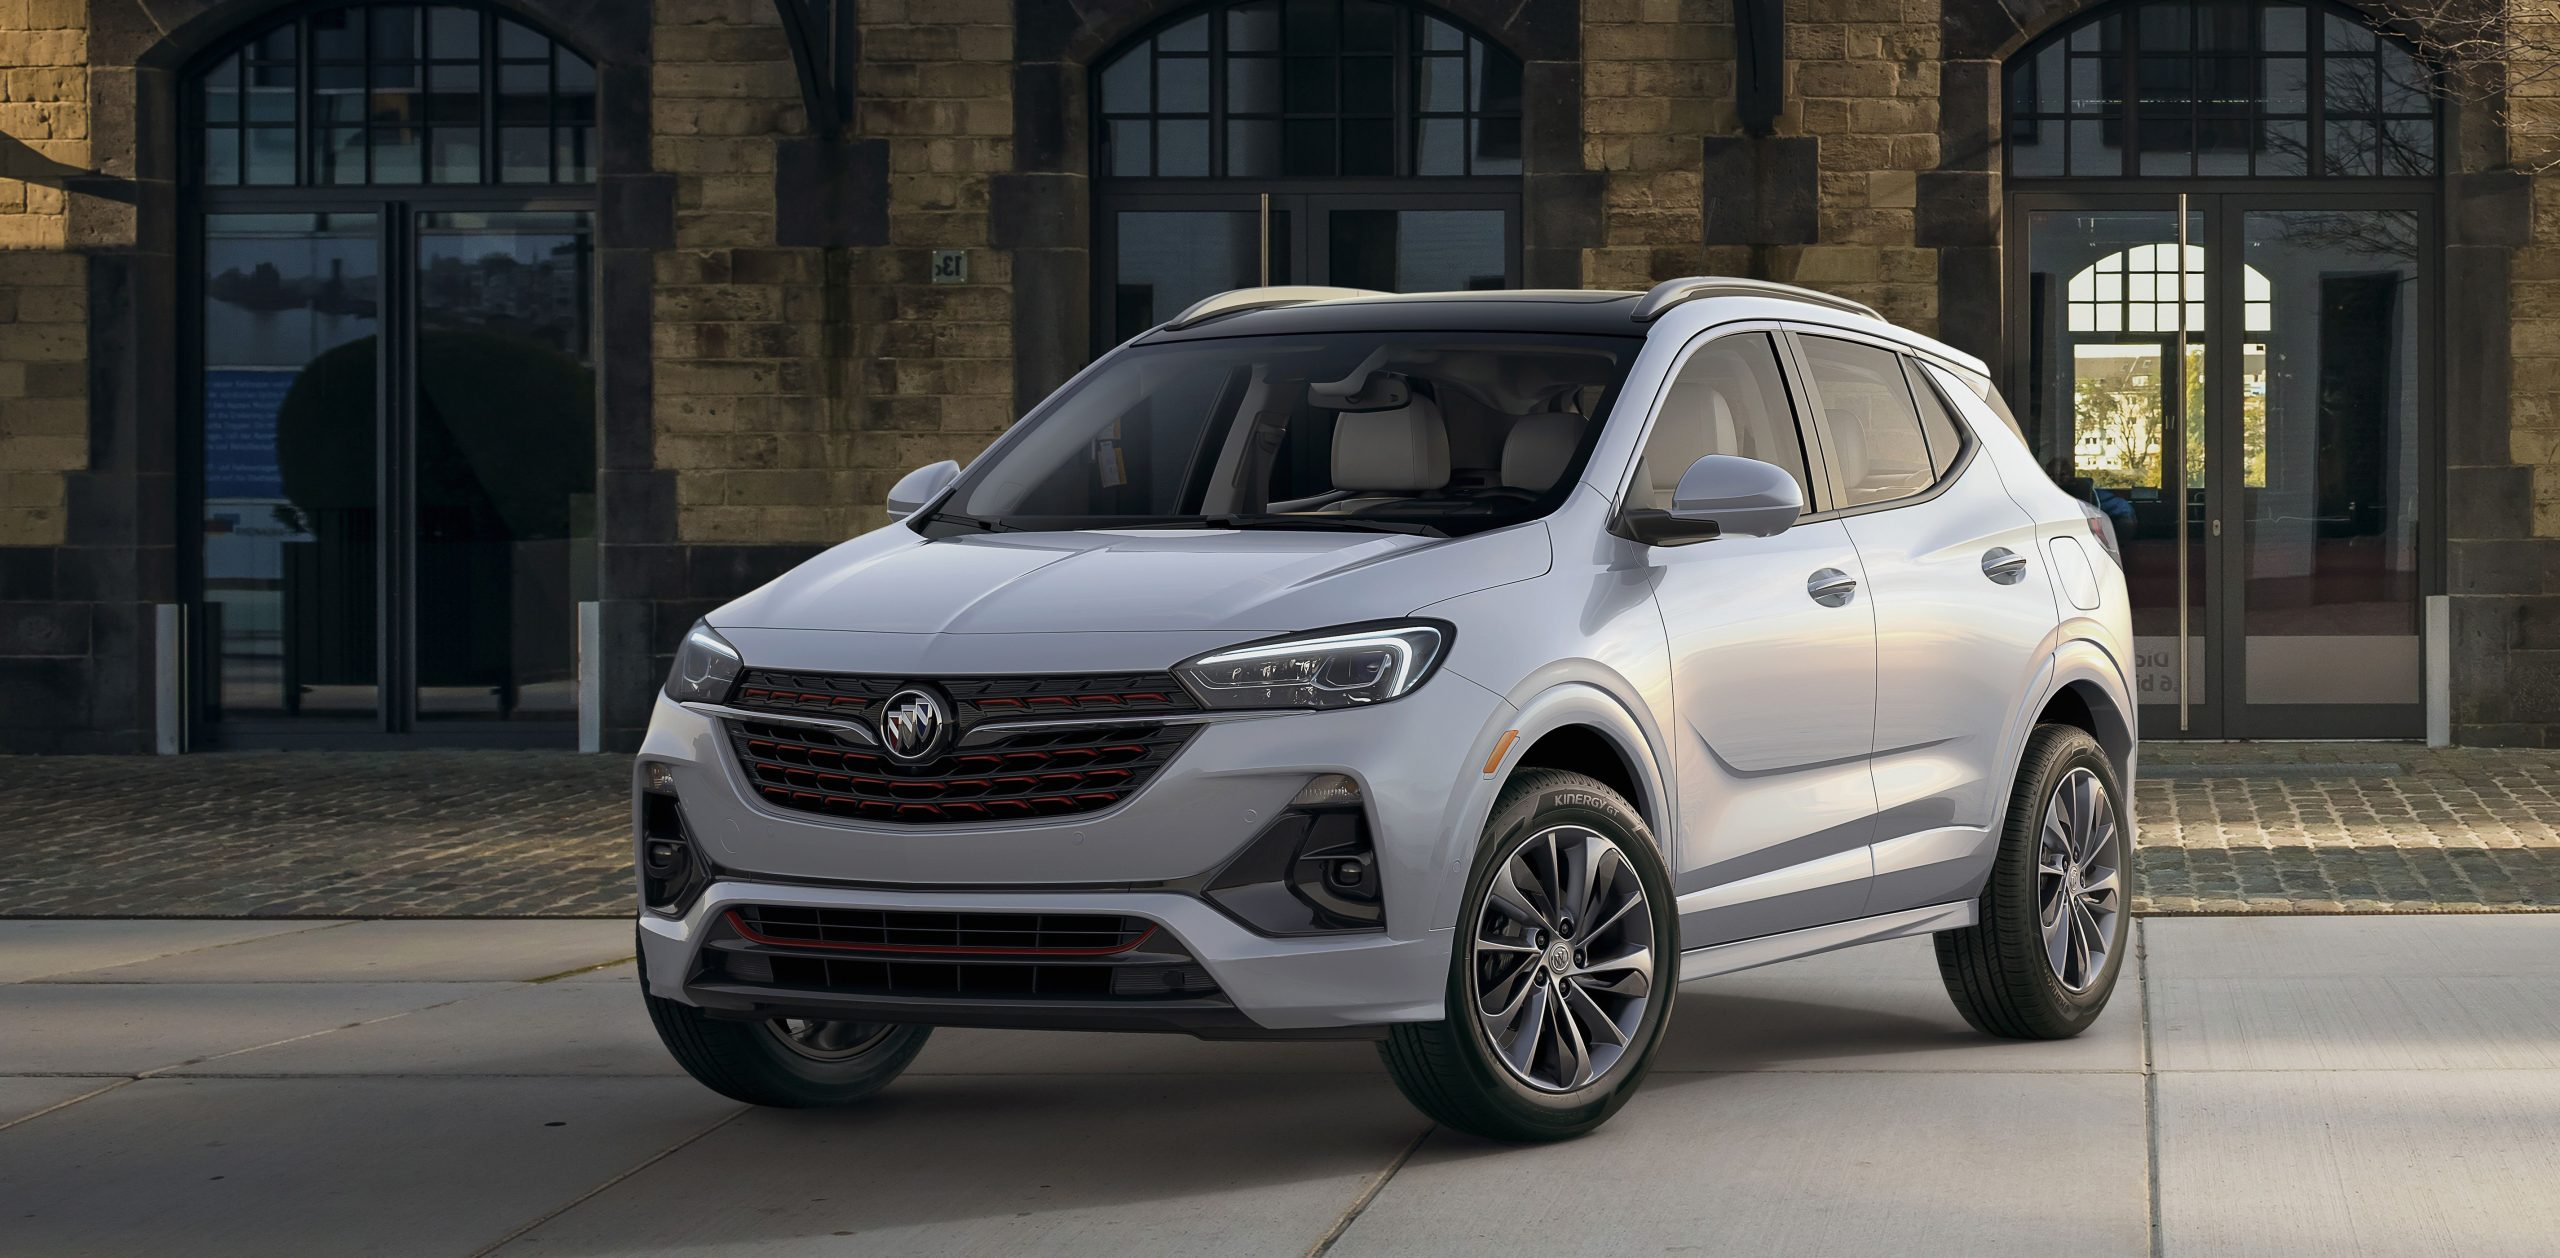 2020 Buick Encore Gx: What We Know So Far When Is The New 2021 Buick Encore Gx Coming Out